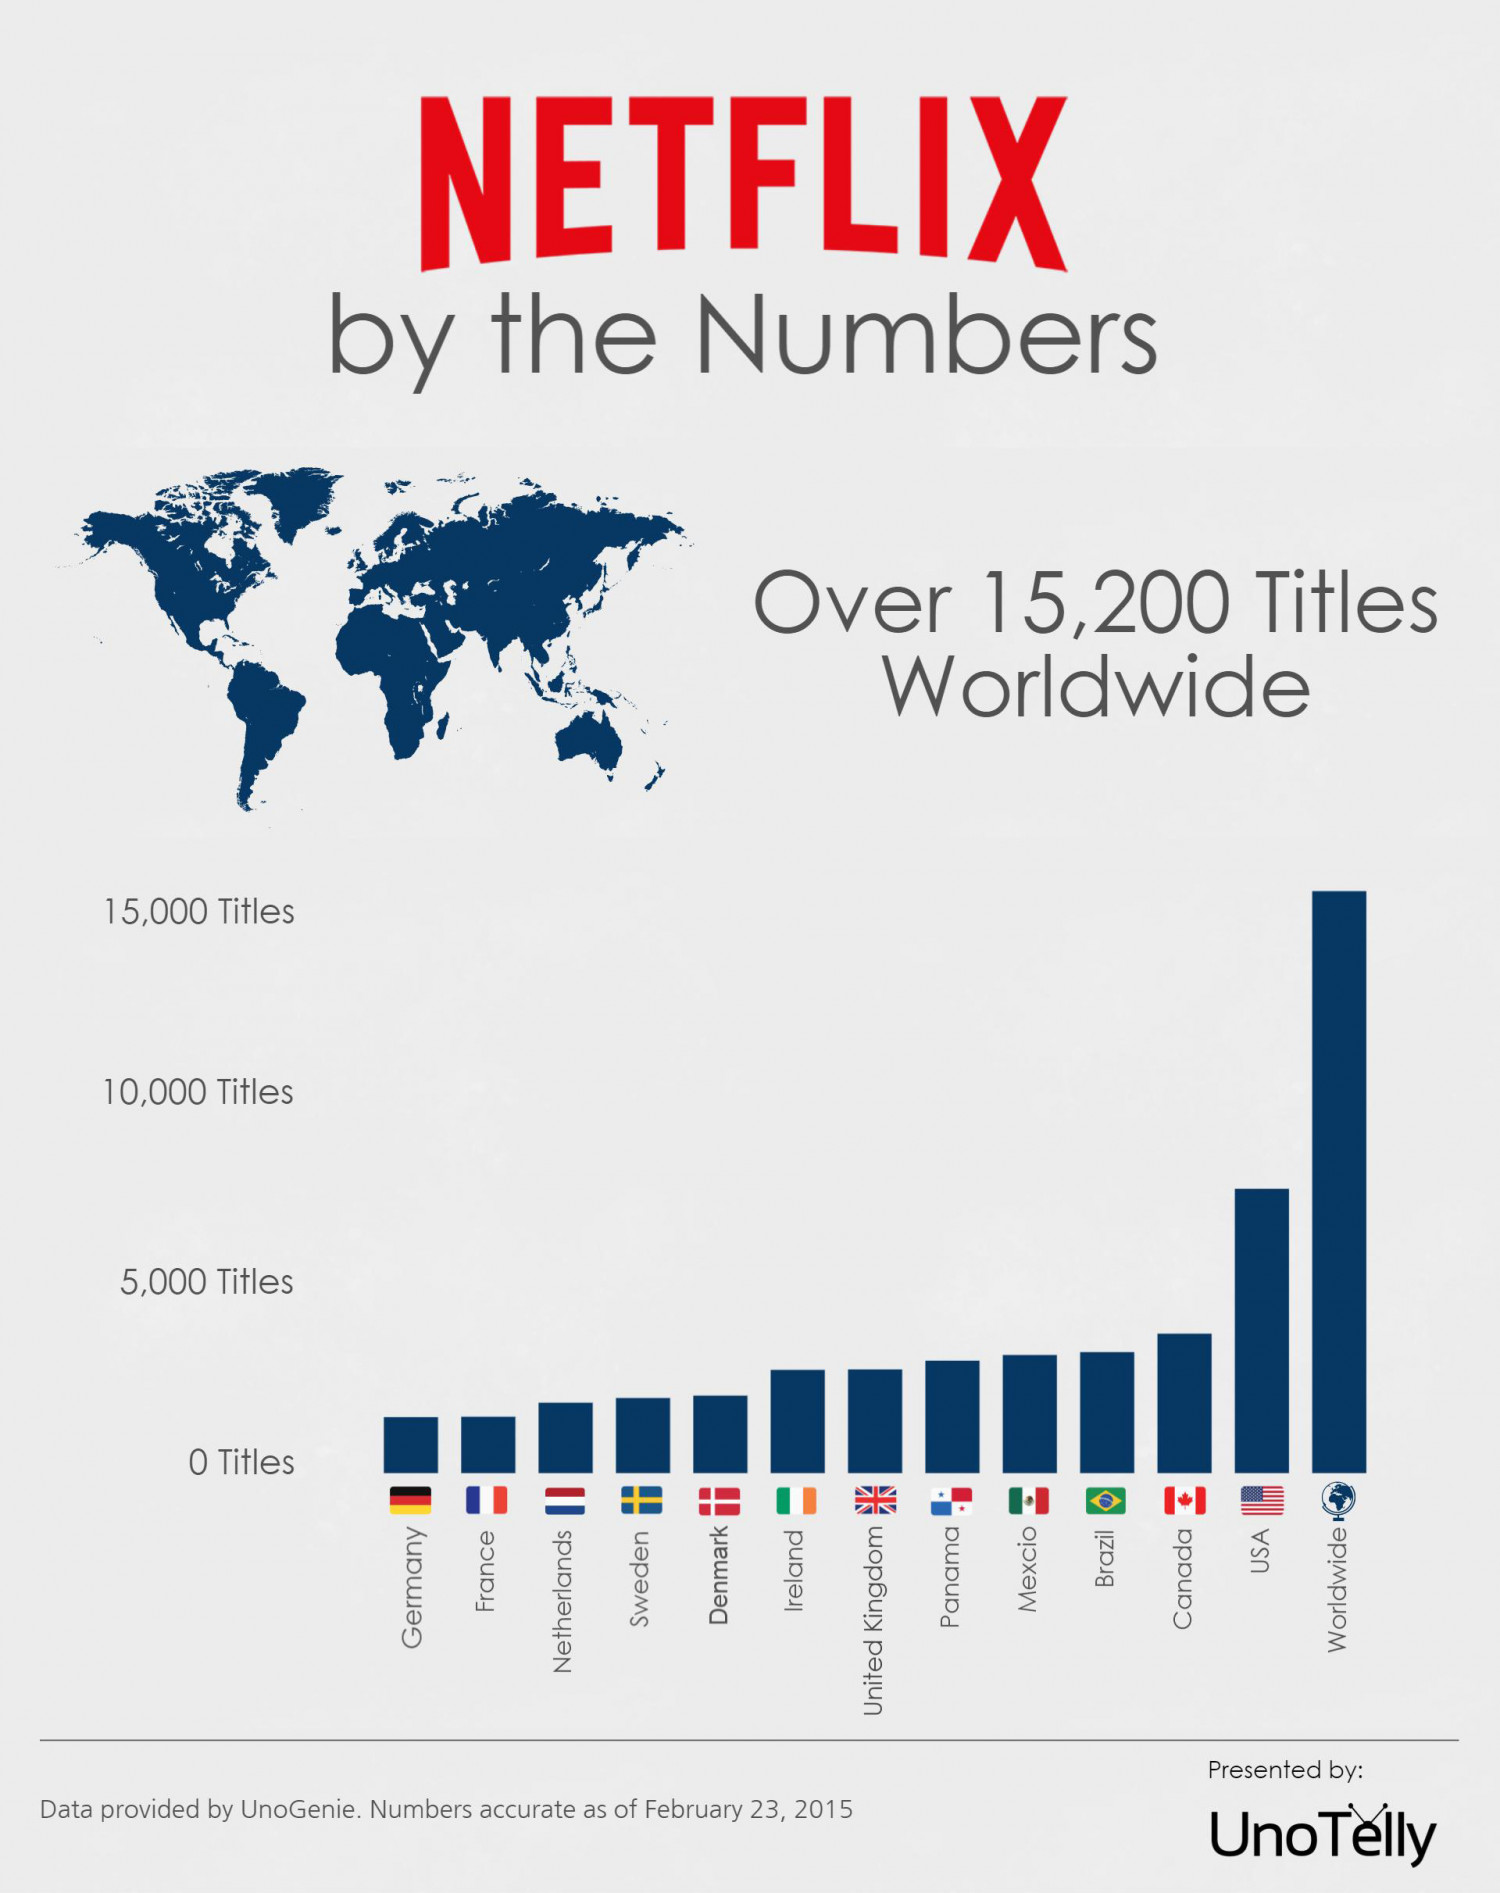 Netflix by the Numbers Infographic